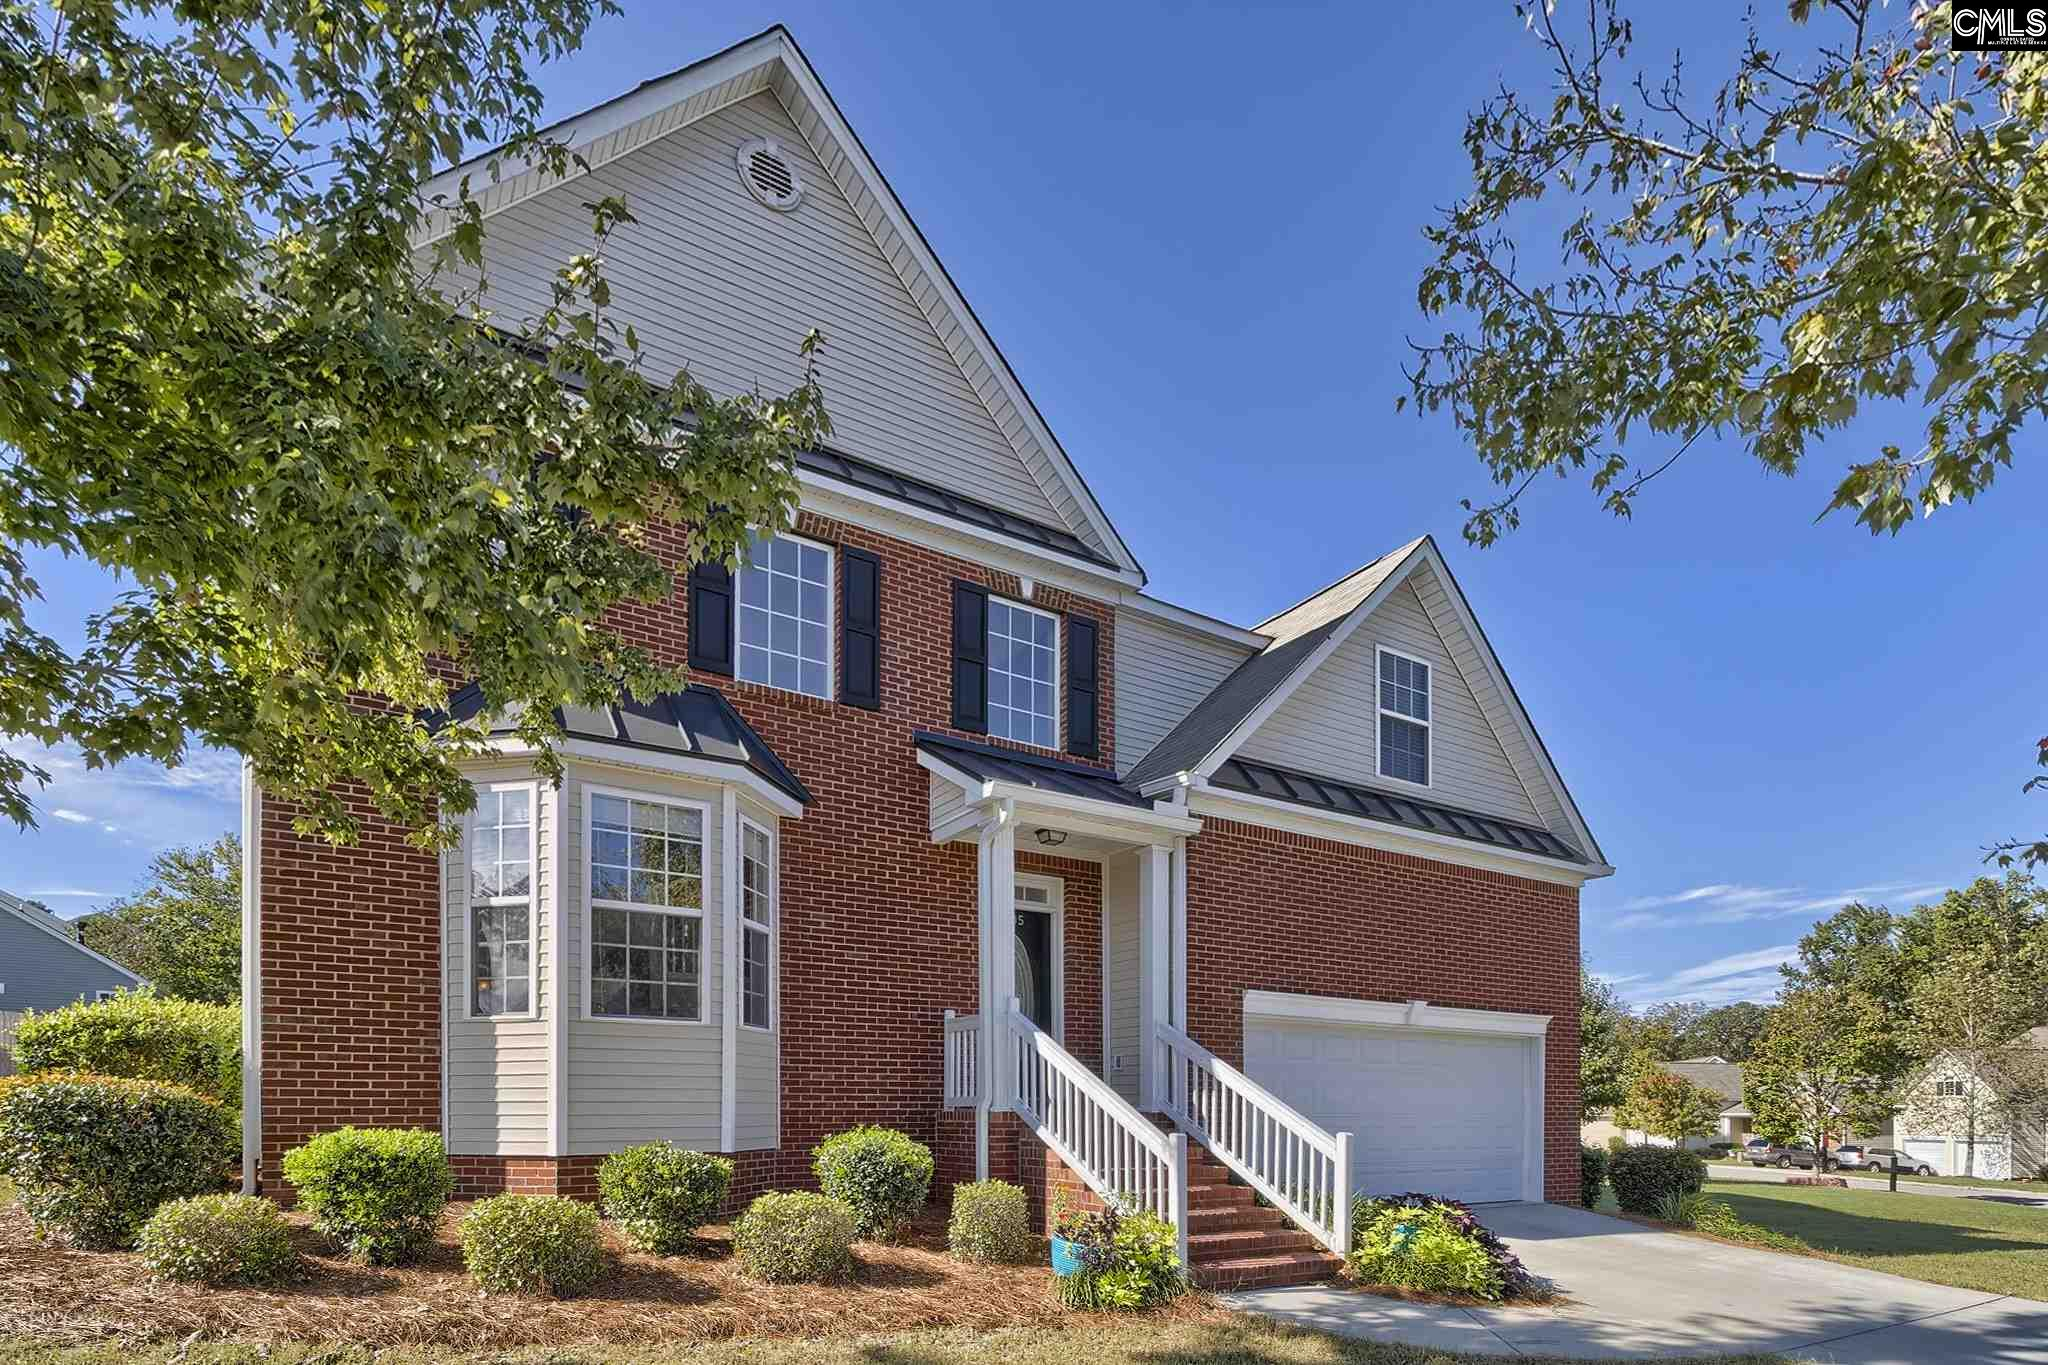 105 Millhouse Lexington, SC 29072